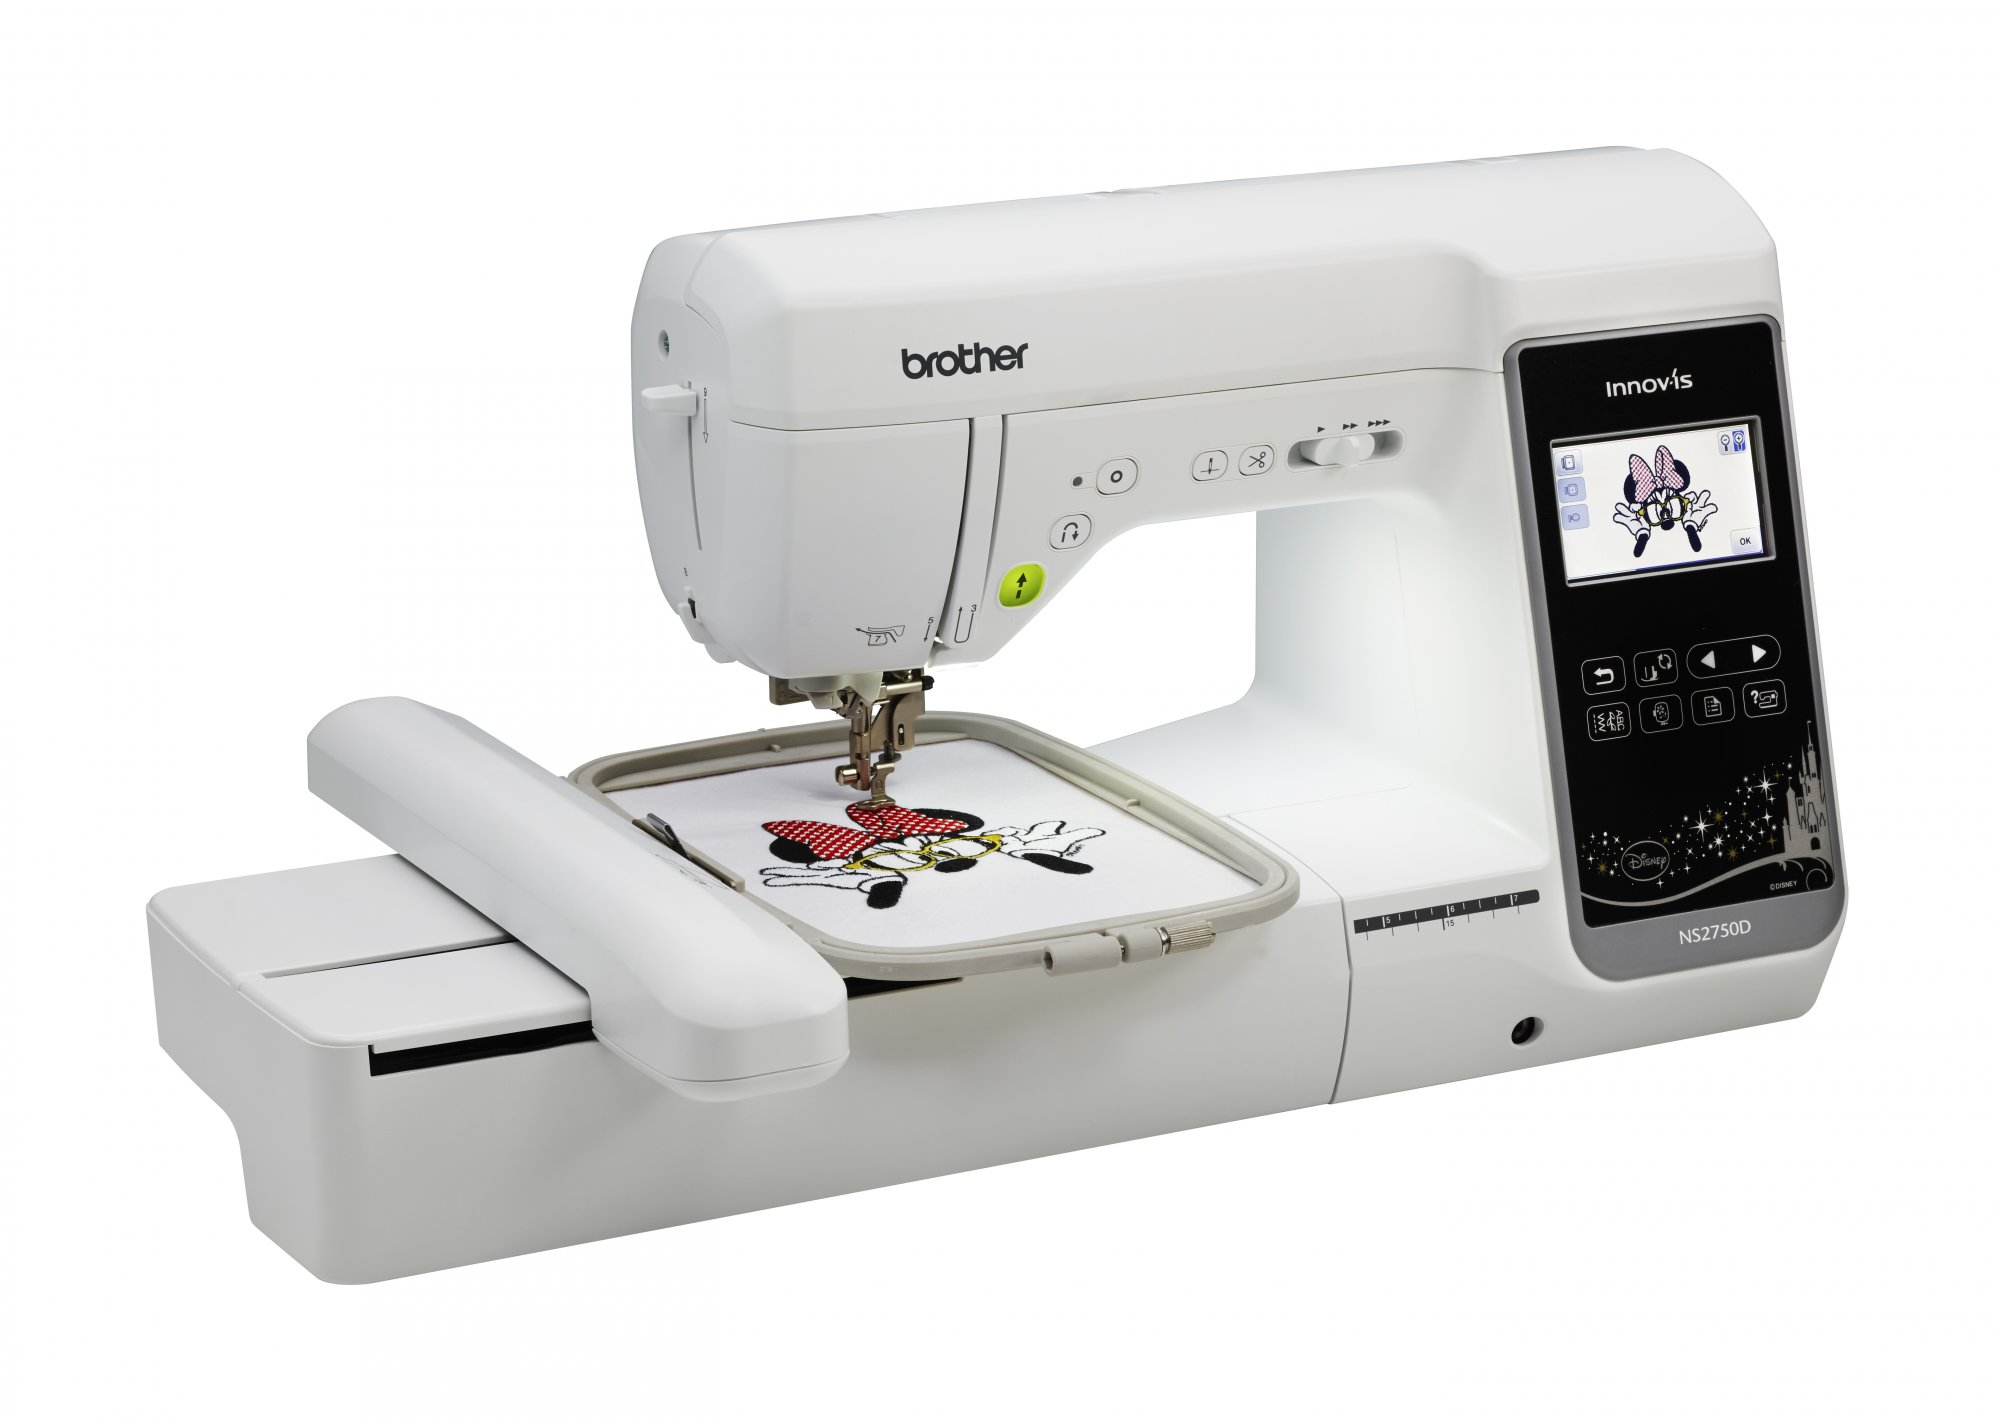 Brother NS2750D